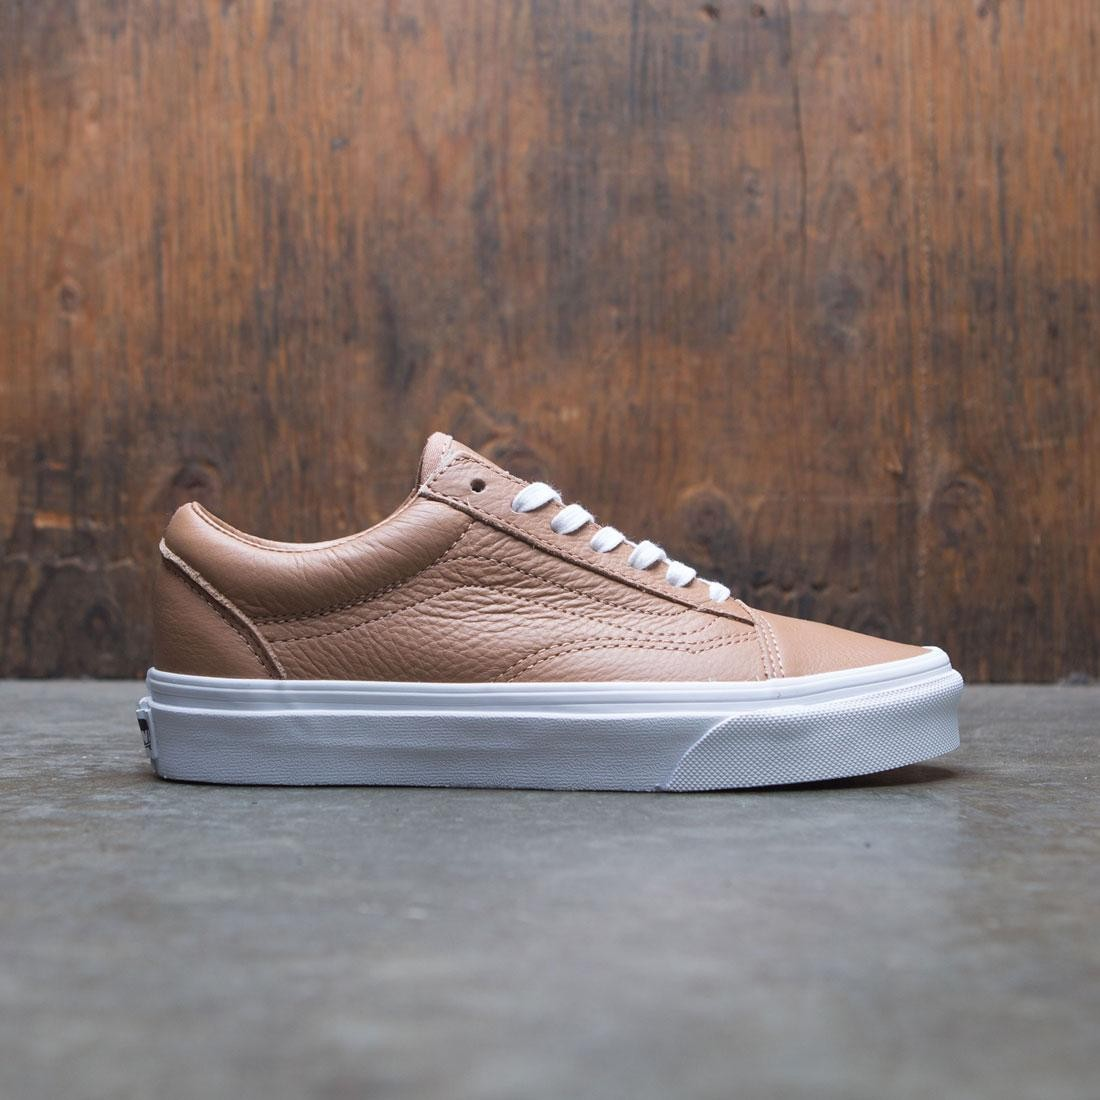 Vans Women Old Skool - Tawny Leather (brown / true white)